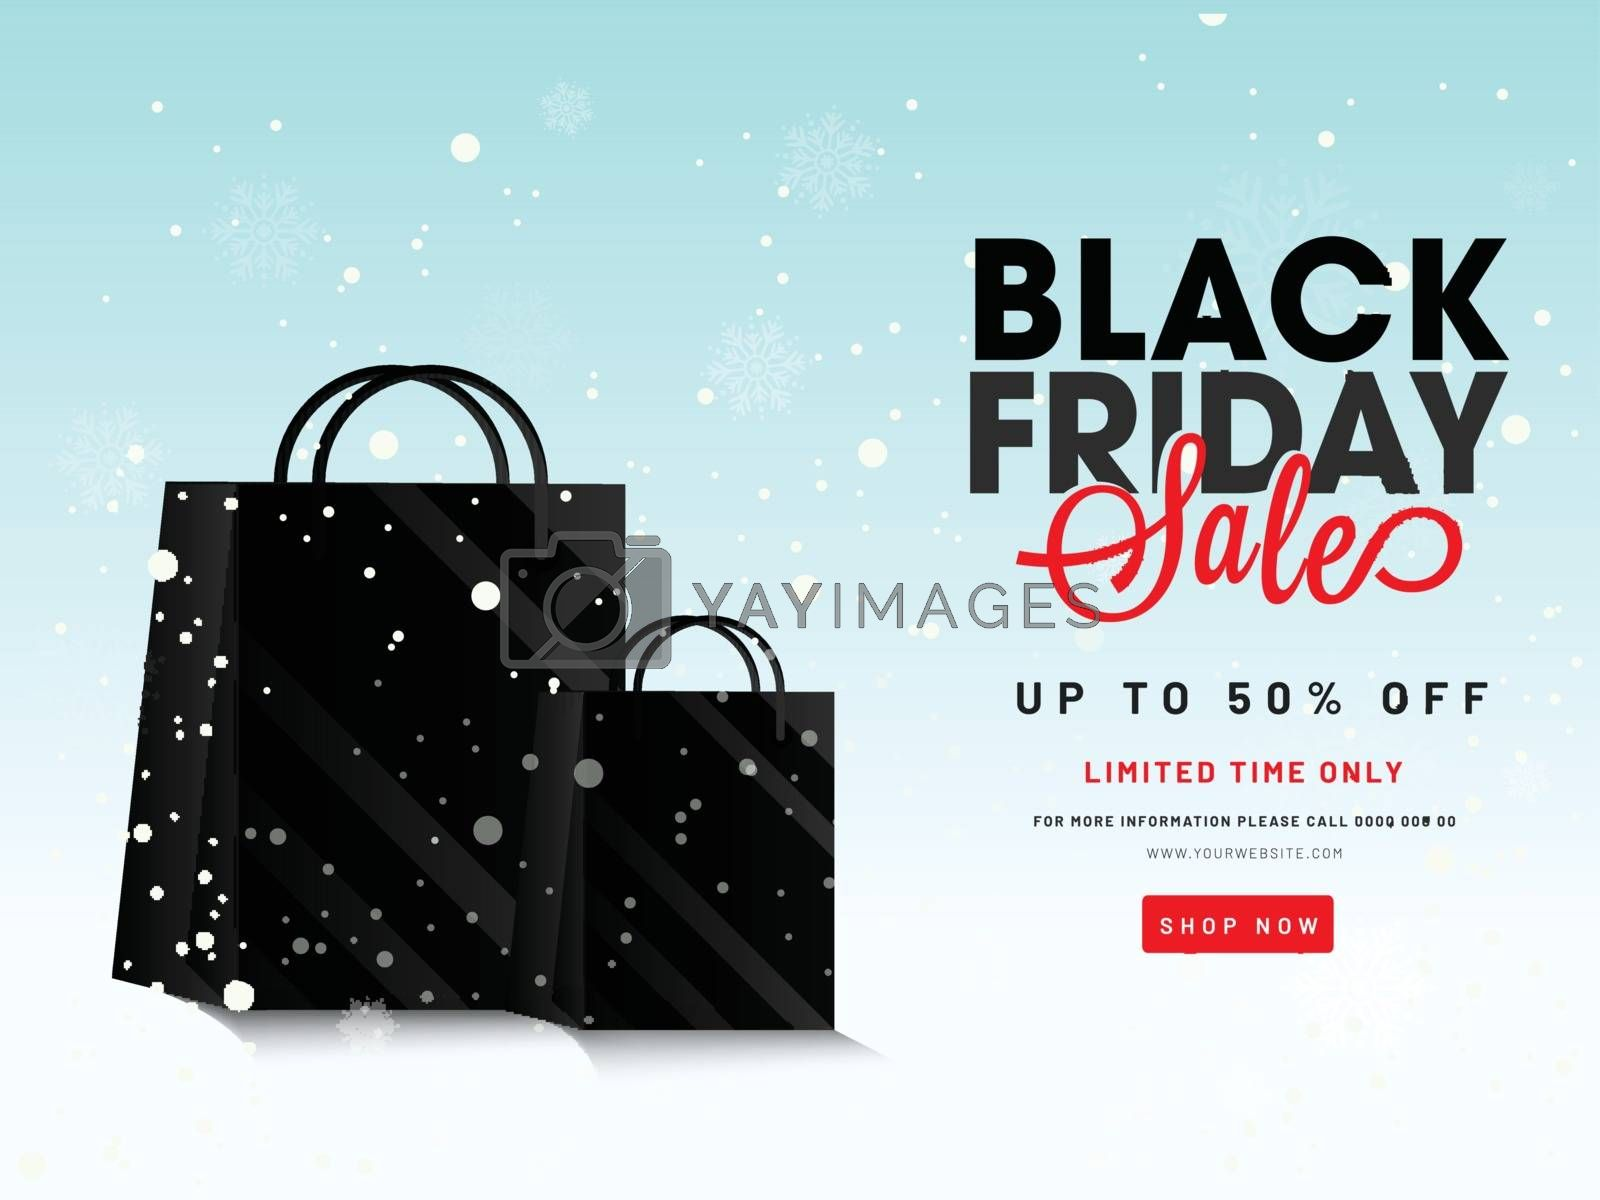 Website poster or banner design with 50% discount offer and shopping bags on snowfall background for Black Friday Sale.